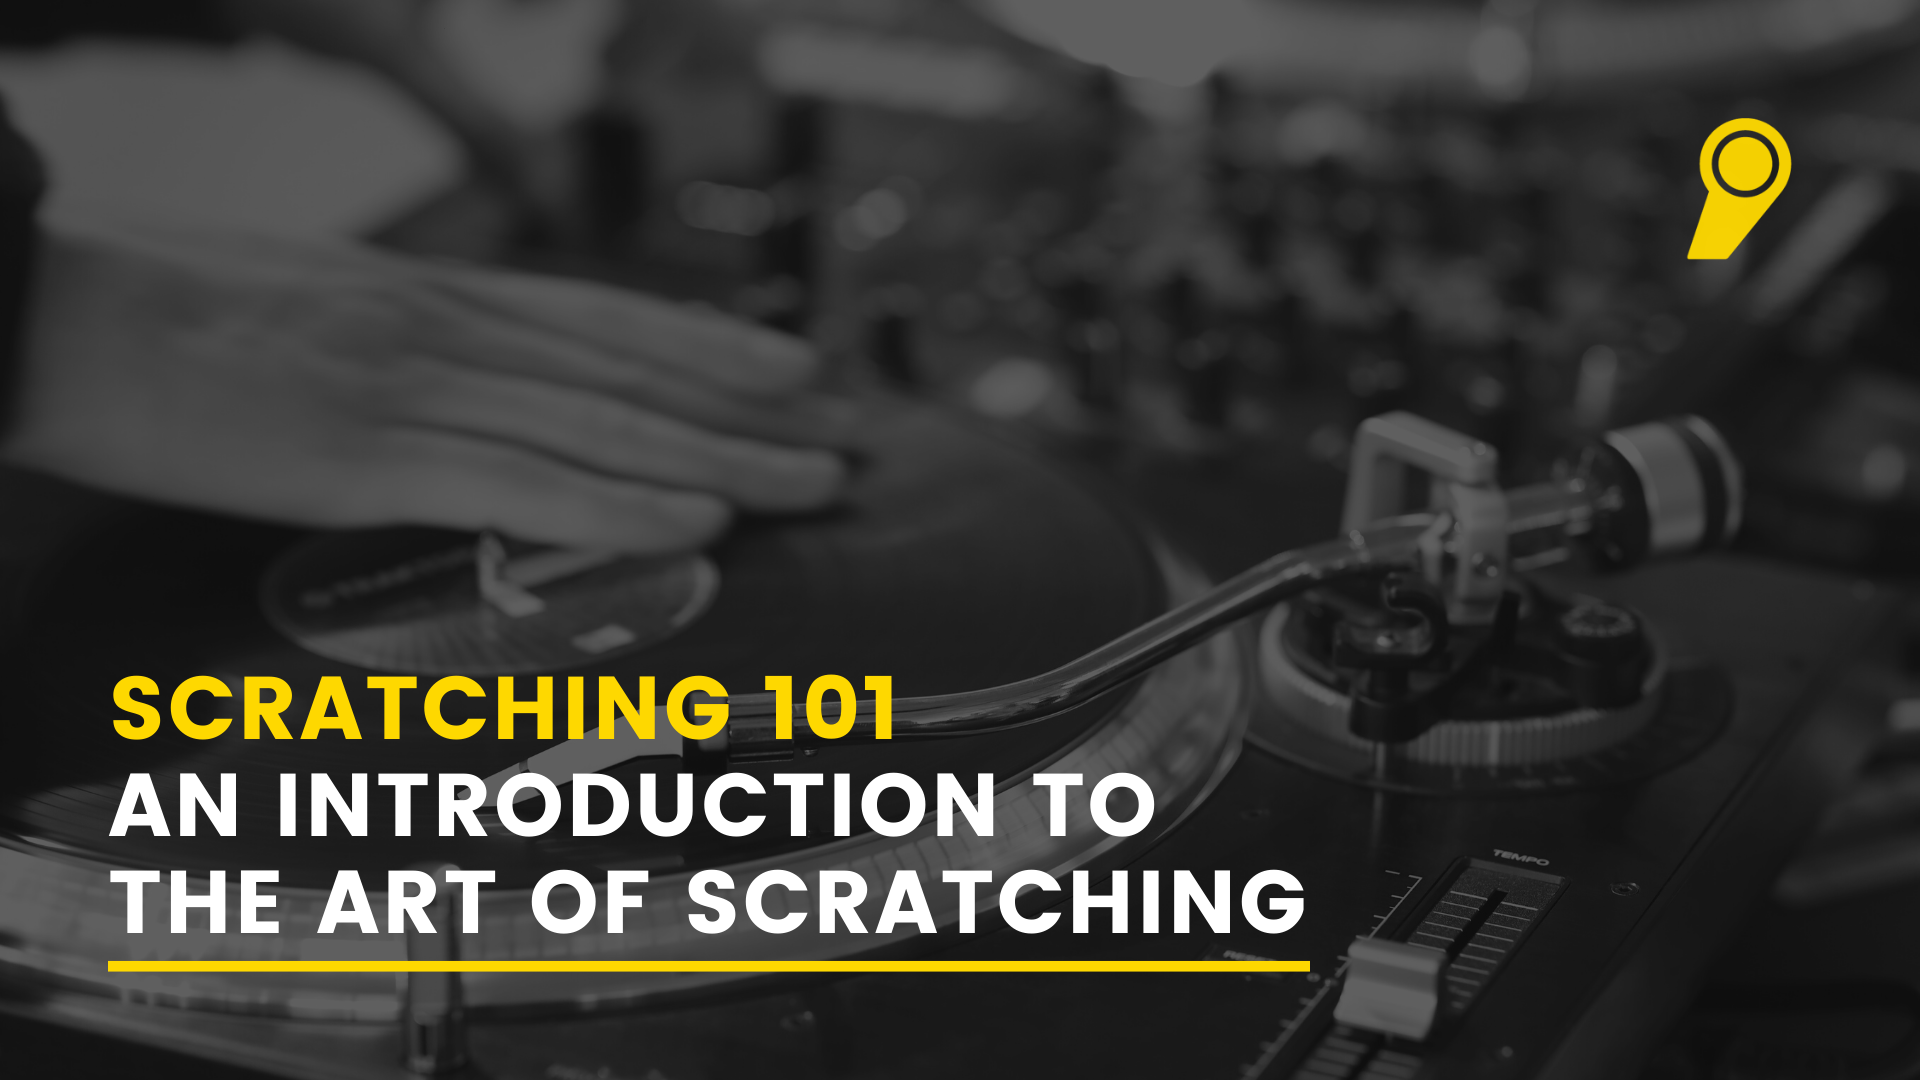 Scratching 101 An Introduction To The Art Of Scratching